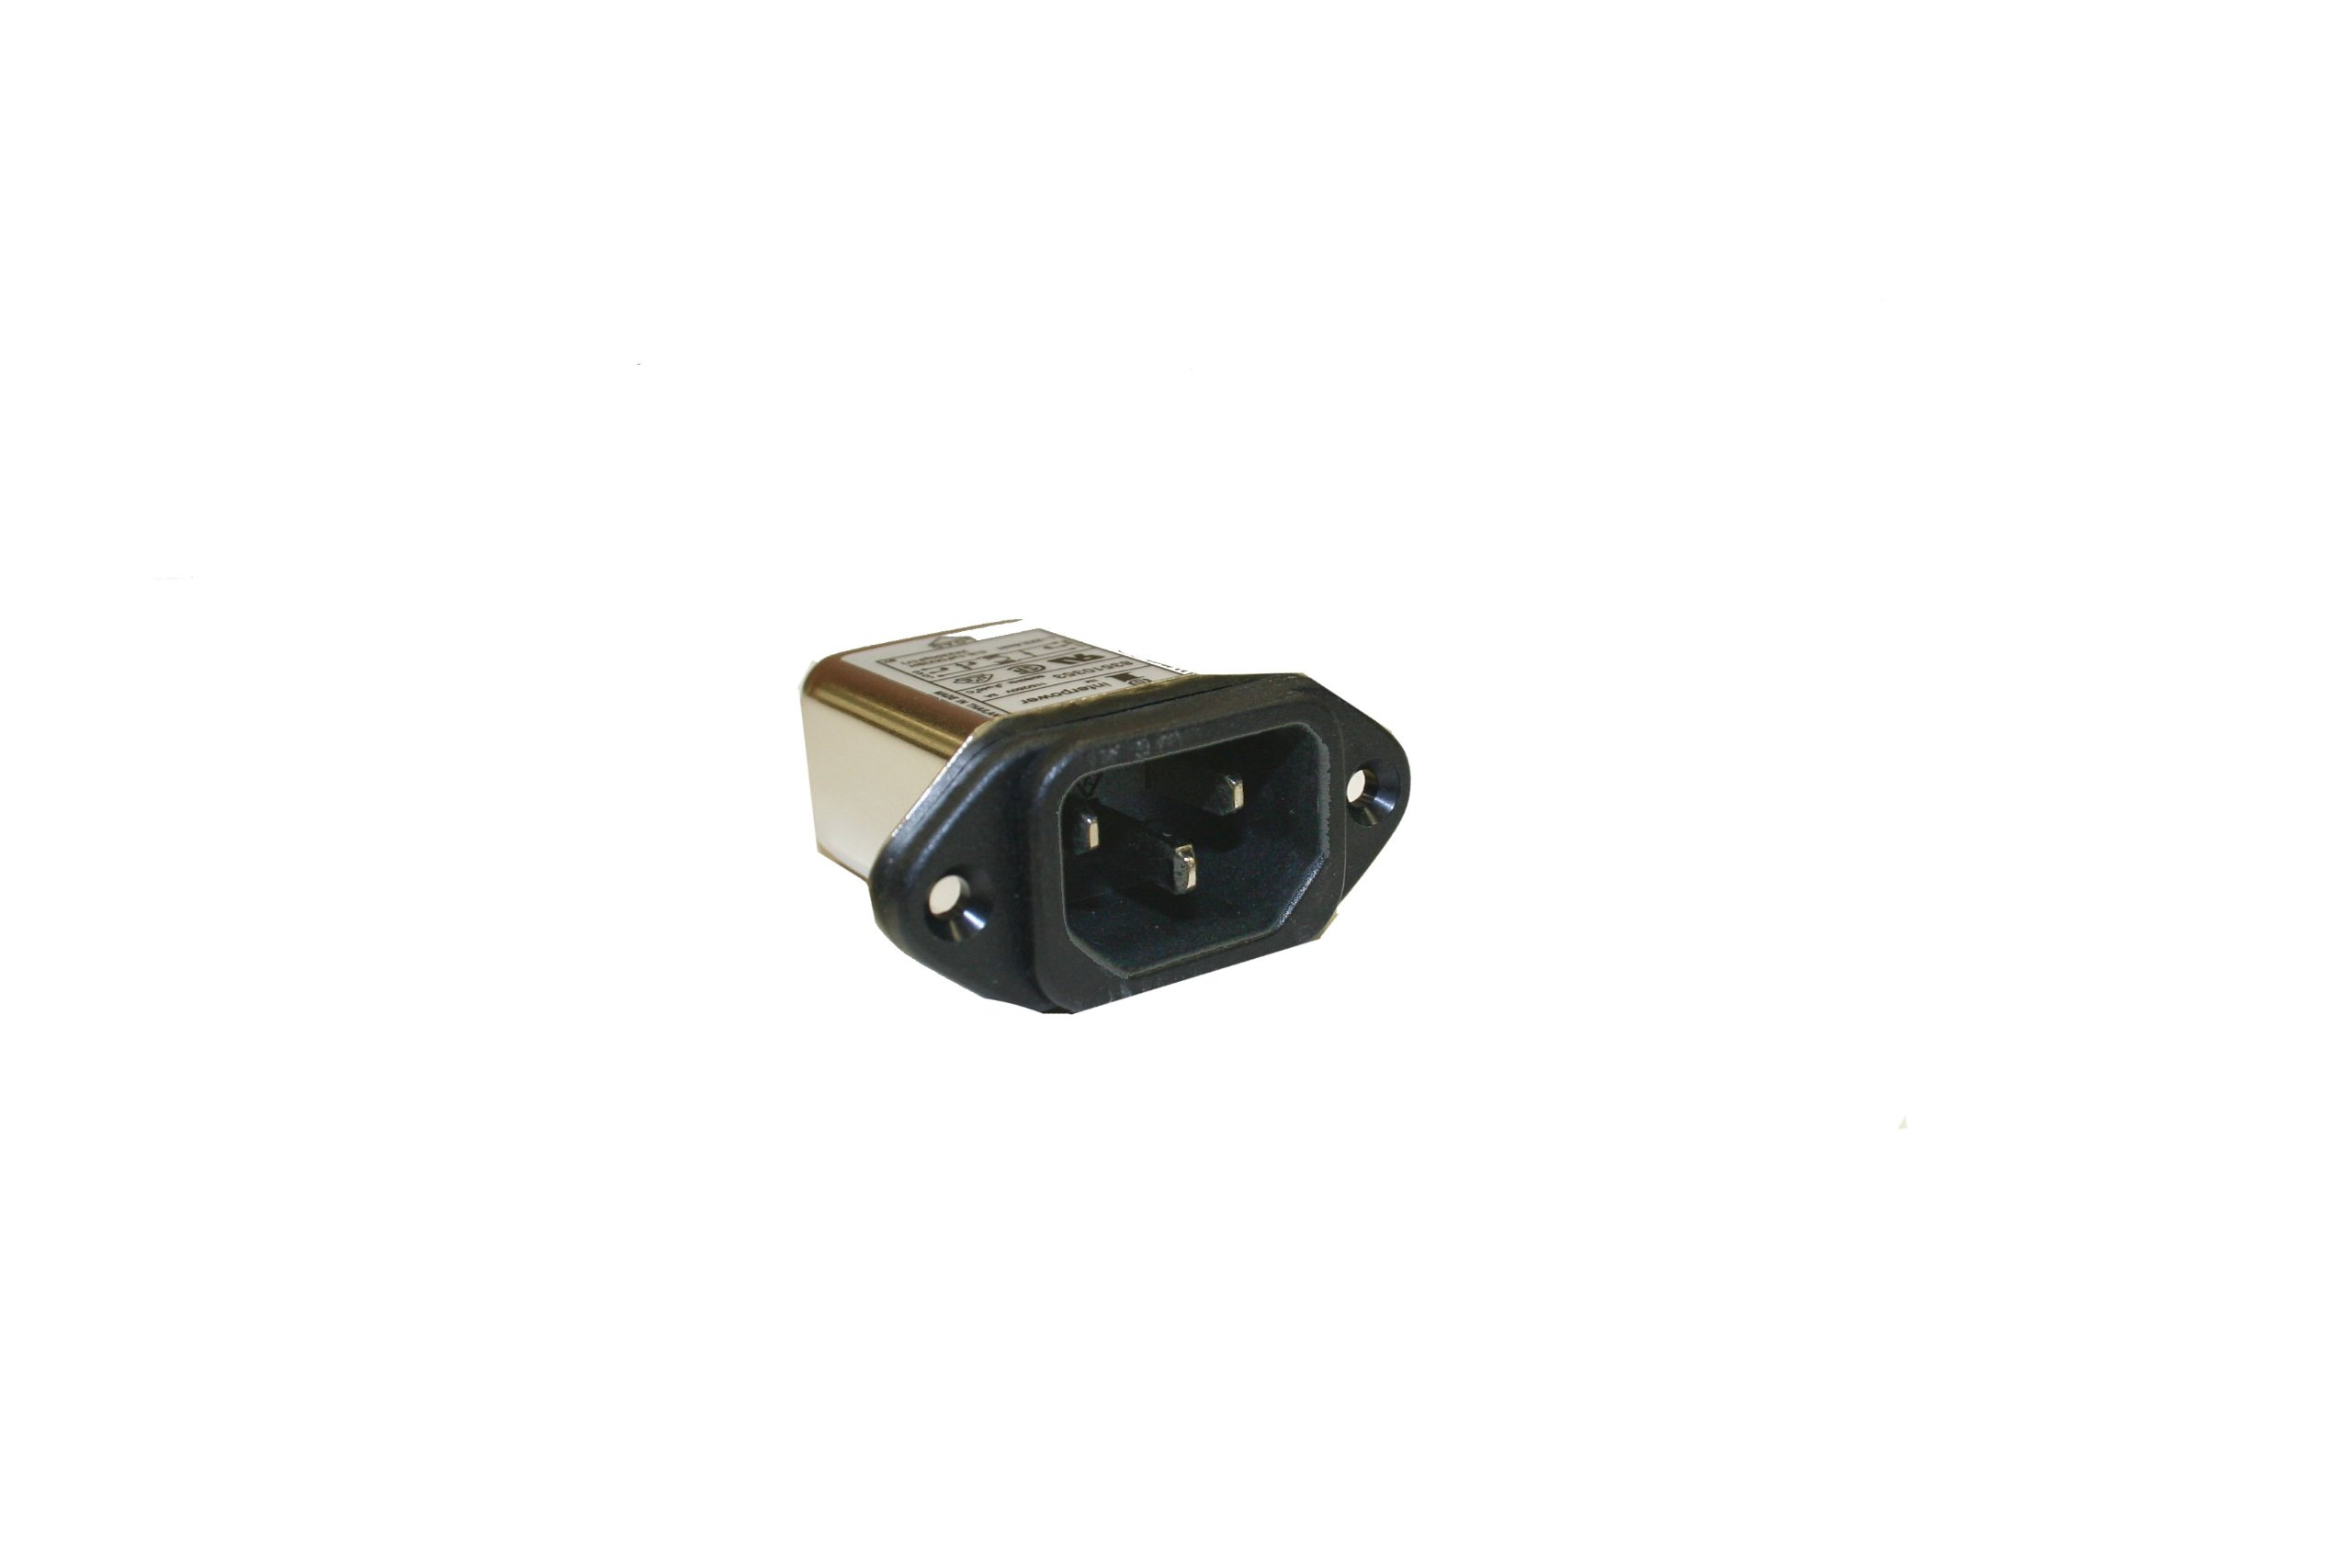 Interpower 83510353 Two Function Power Entry Module, C14 Inlet, Filter, 3A Current Rating, 115/250VAC Voltage Rating